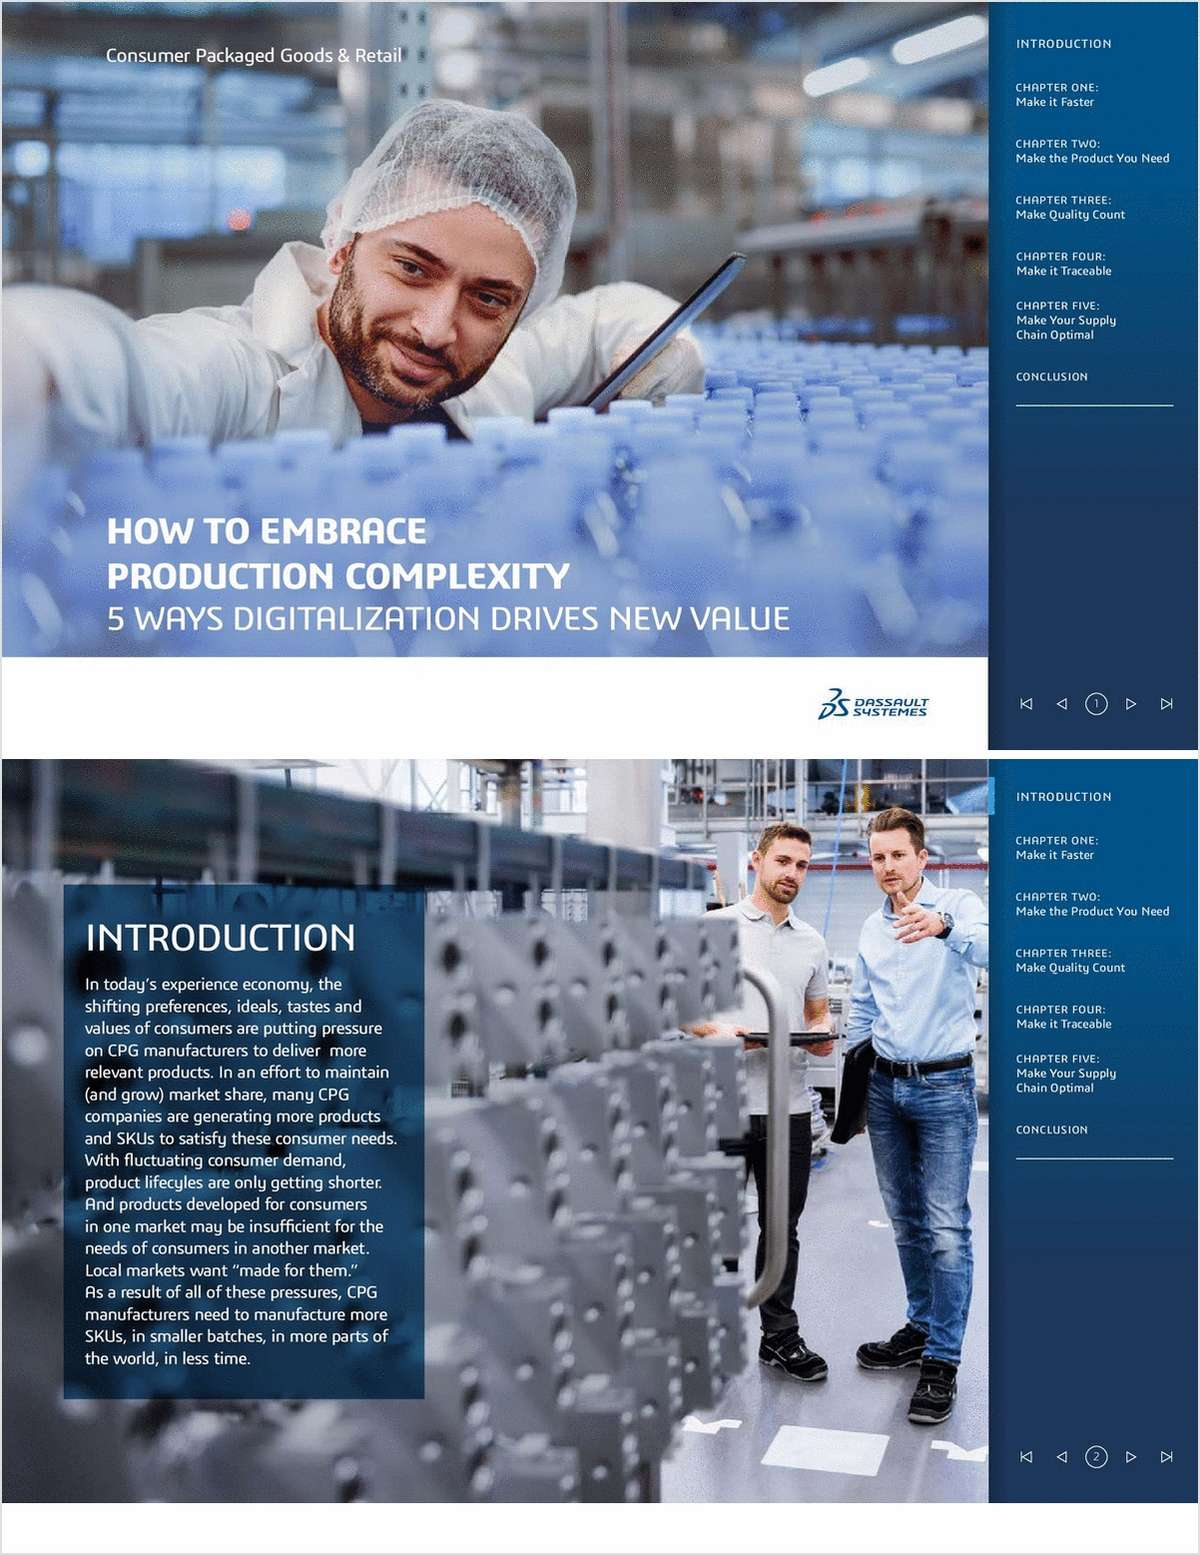 How To Embrace Production Complexity: 5 Ways Digitalization Drives New Value